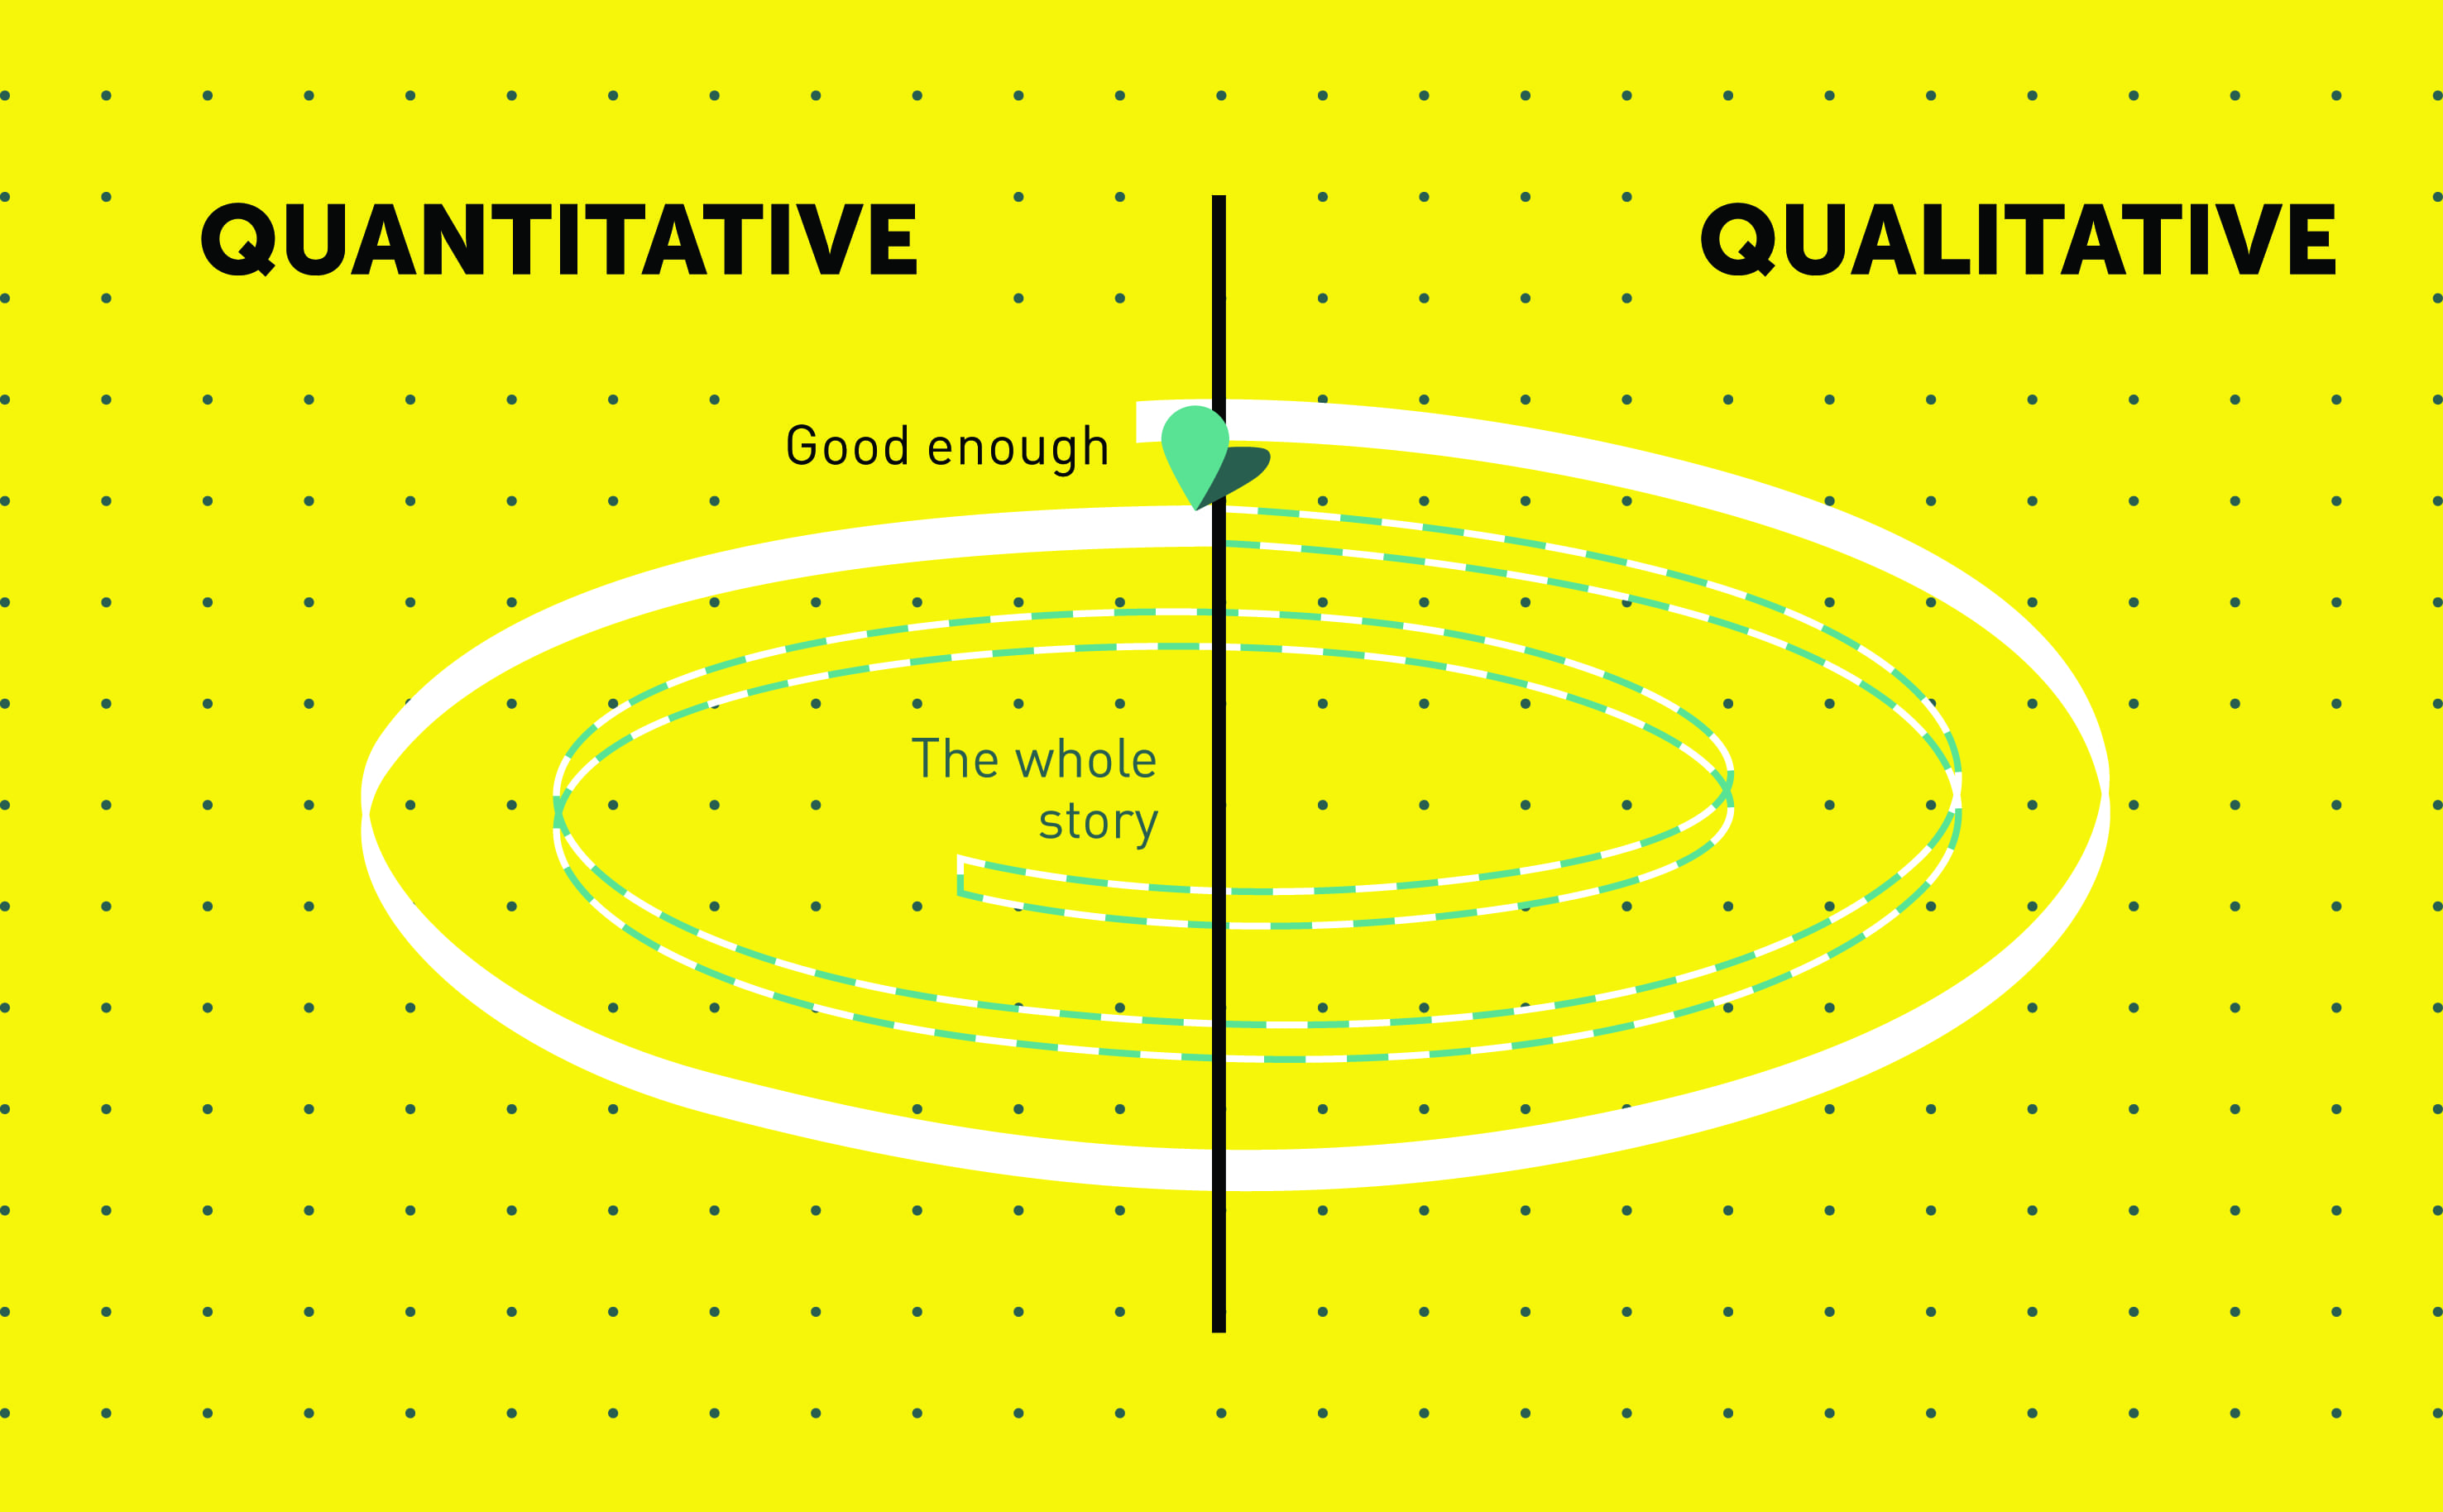 The spiral of qualitative and quantitative stages